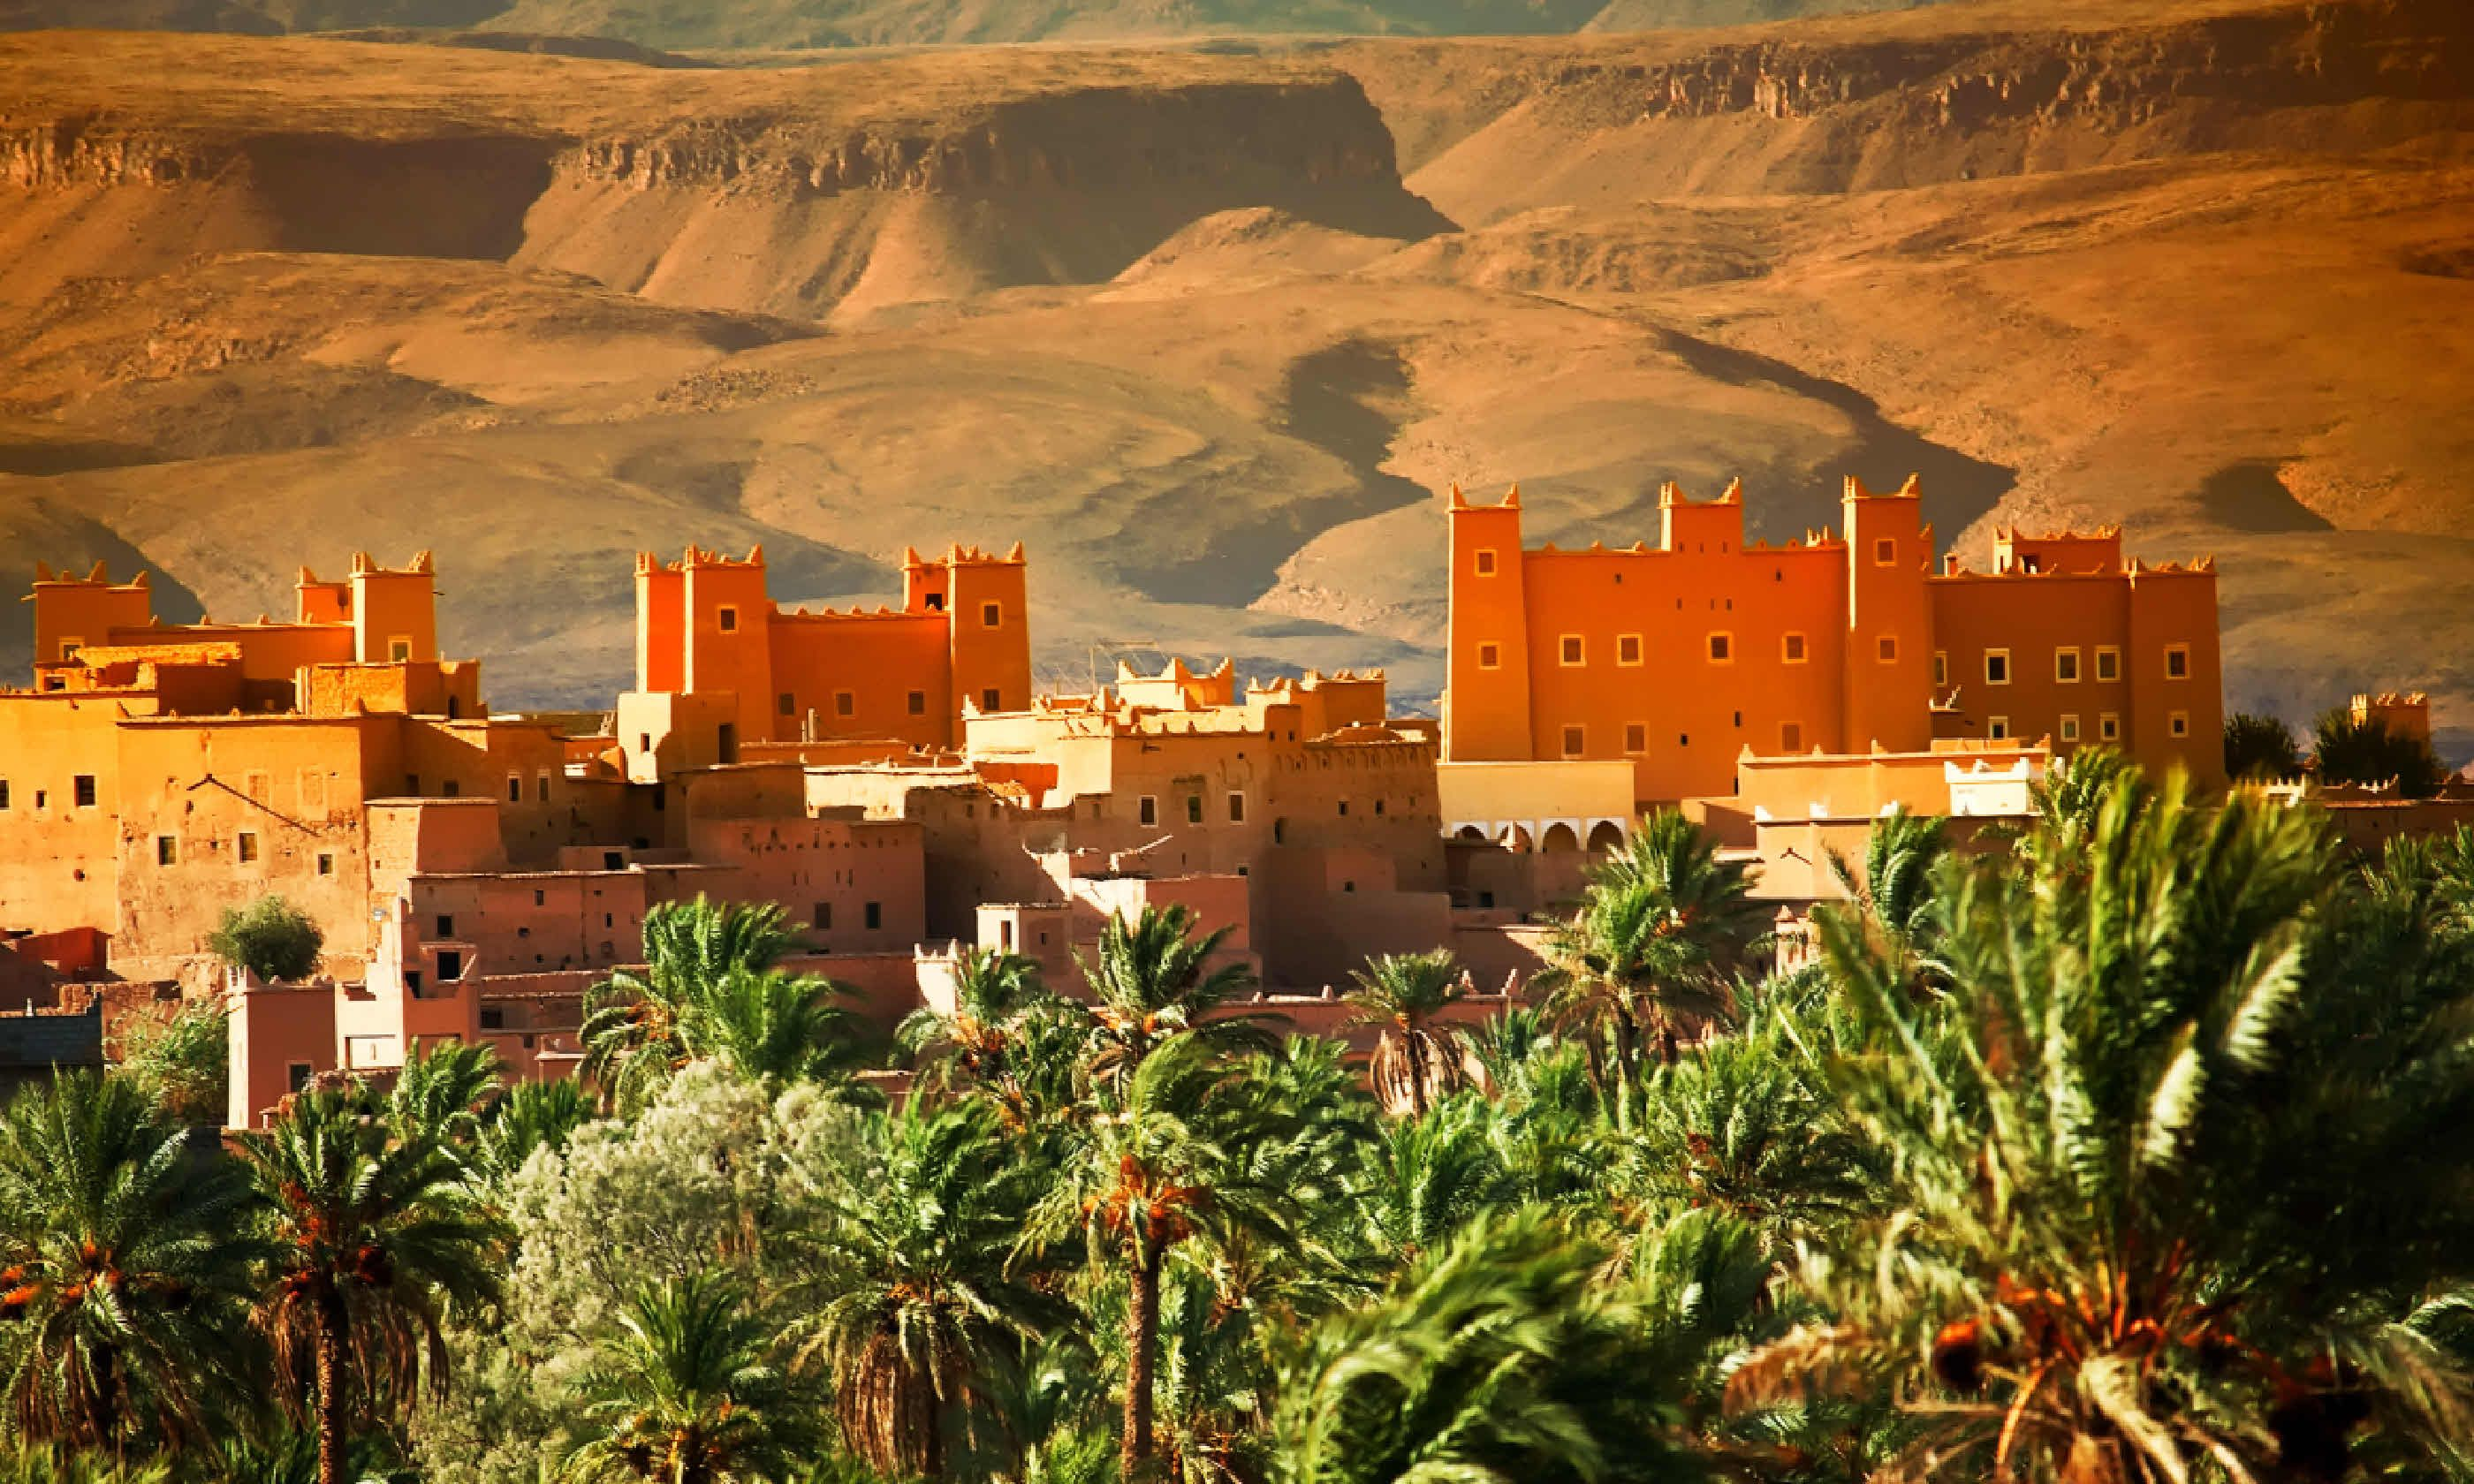 Moroccan kasbah in Atlas Mountains, Morocco (Shutterstock)